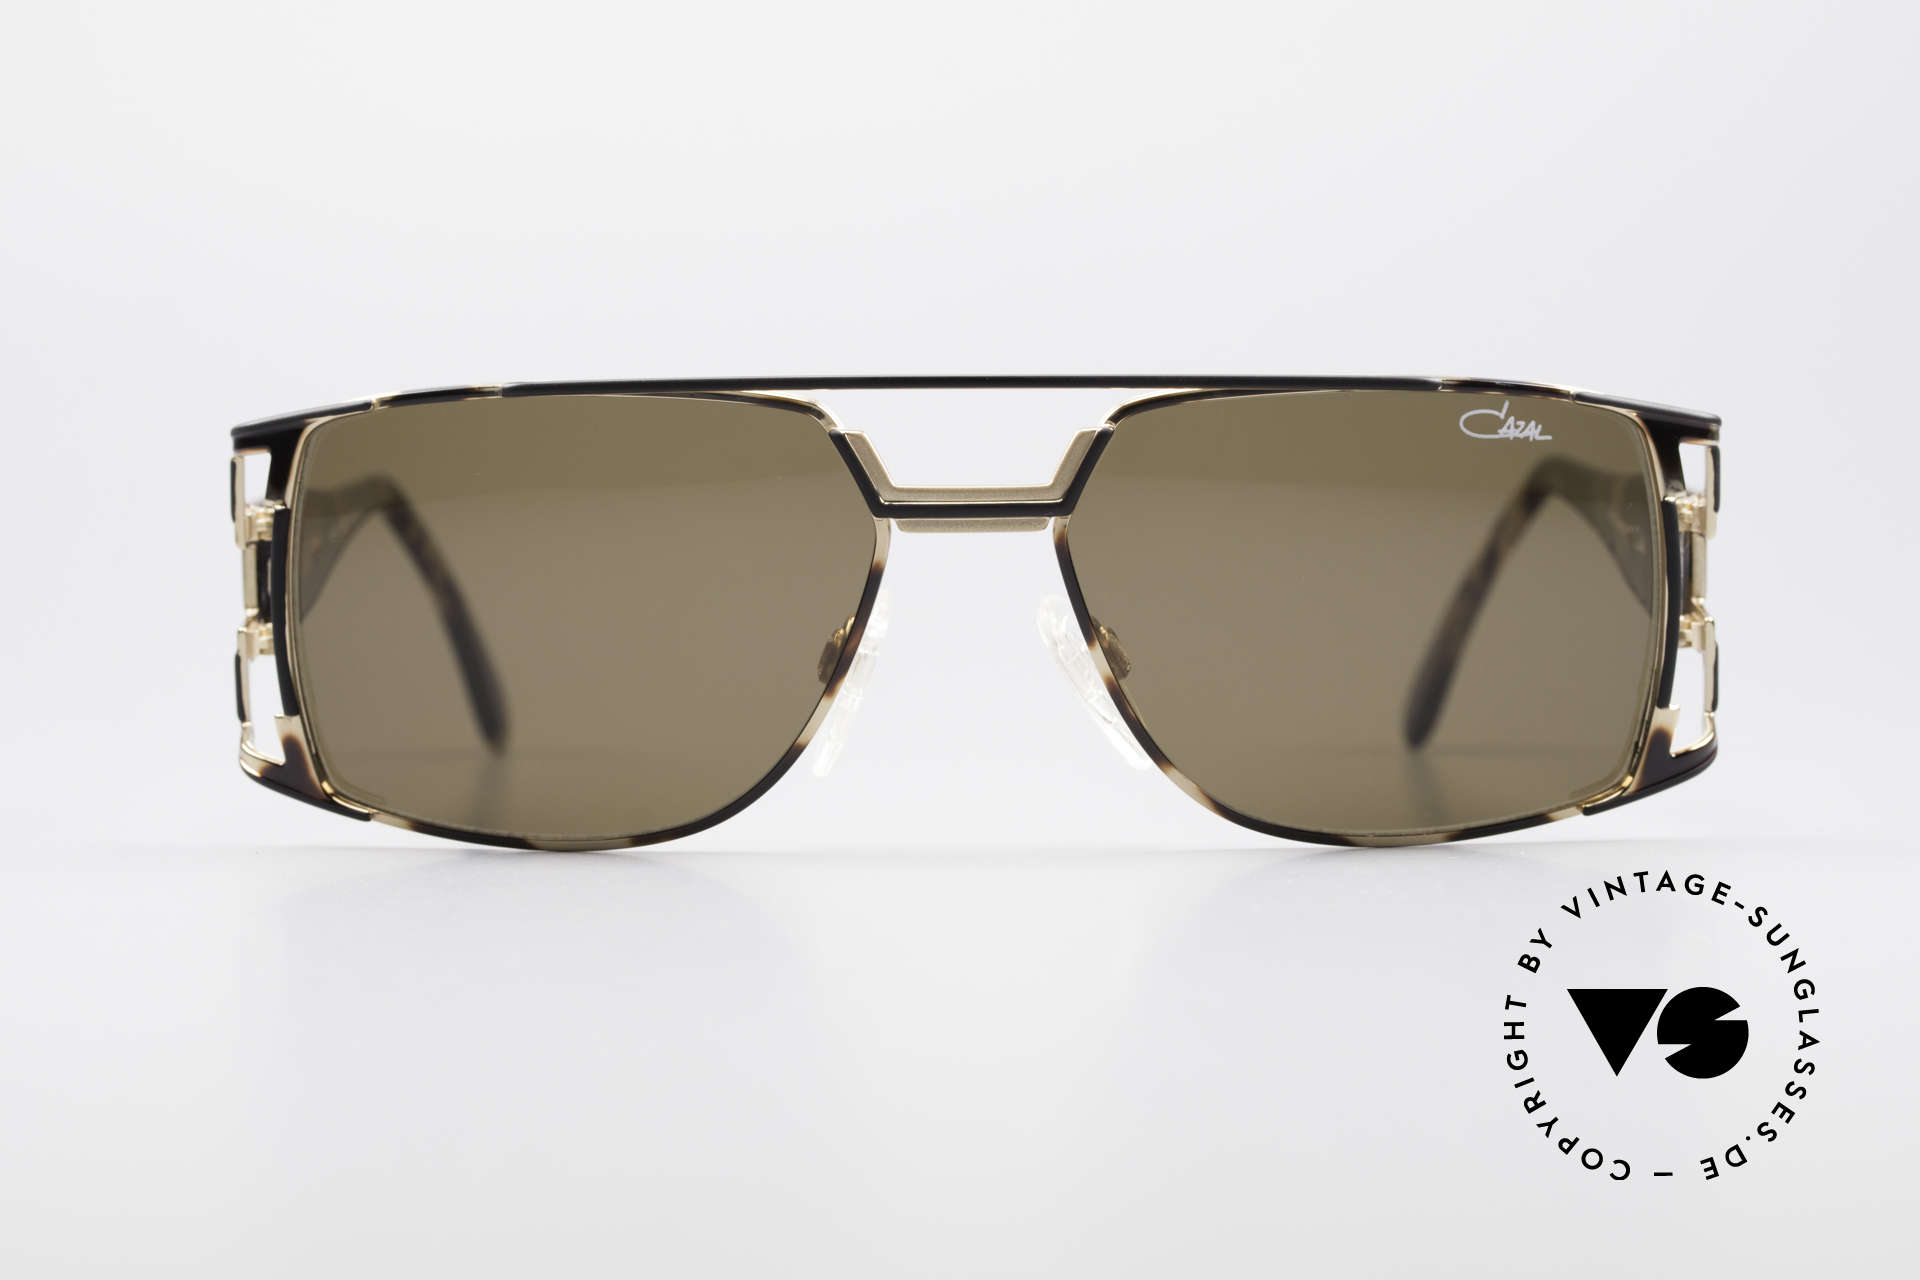 Cazal 974 Designer Shades Ladies Gents, great combination of design elements and materials, Made for Men and Women